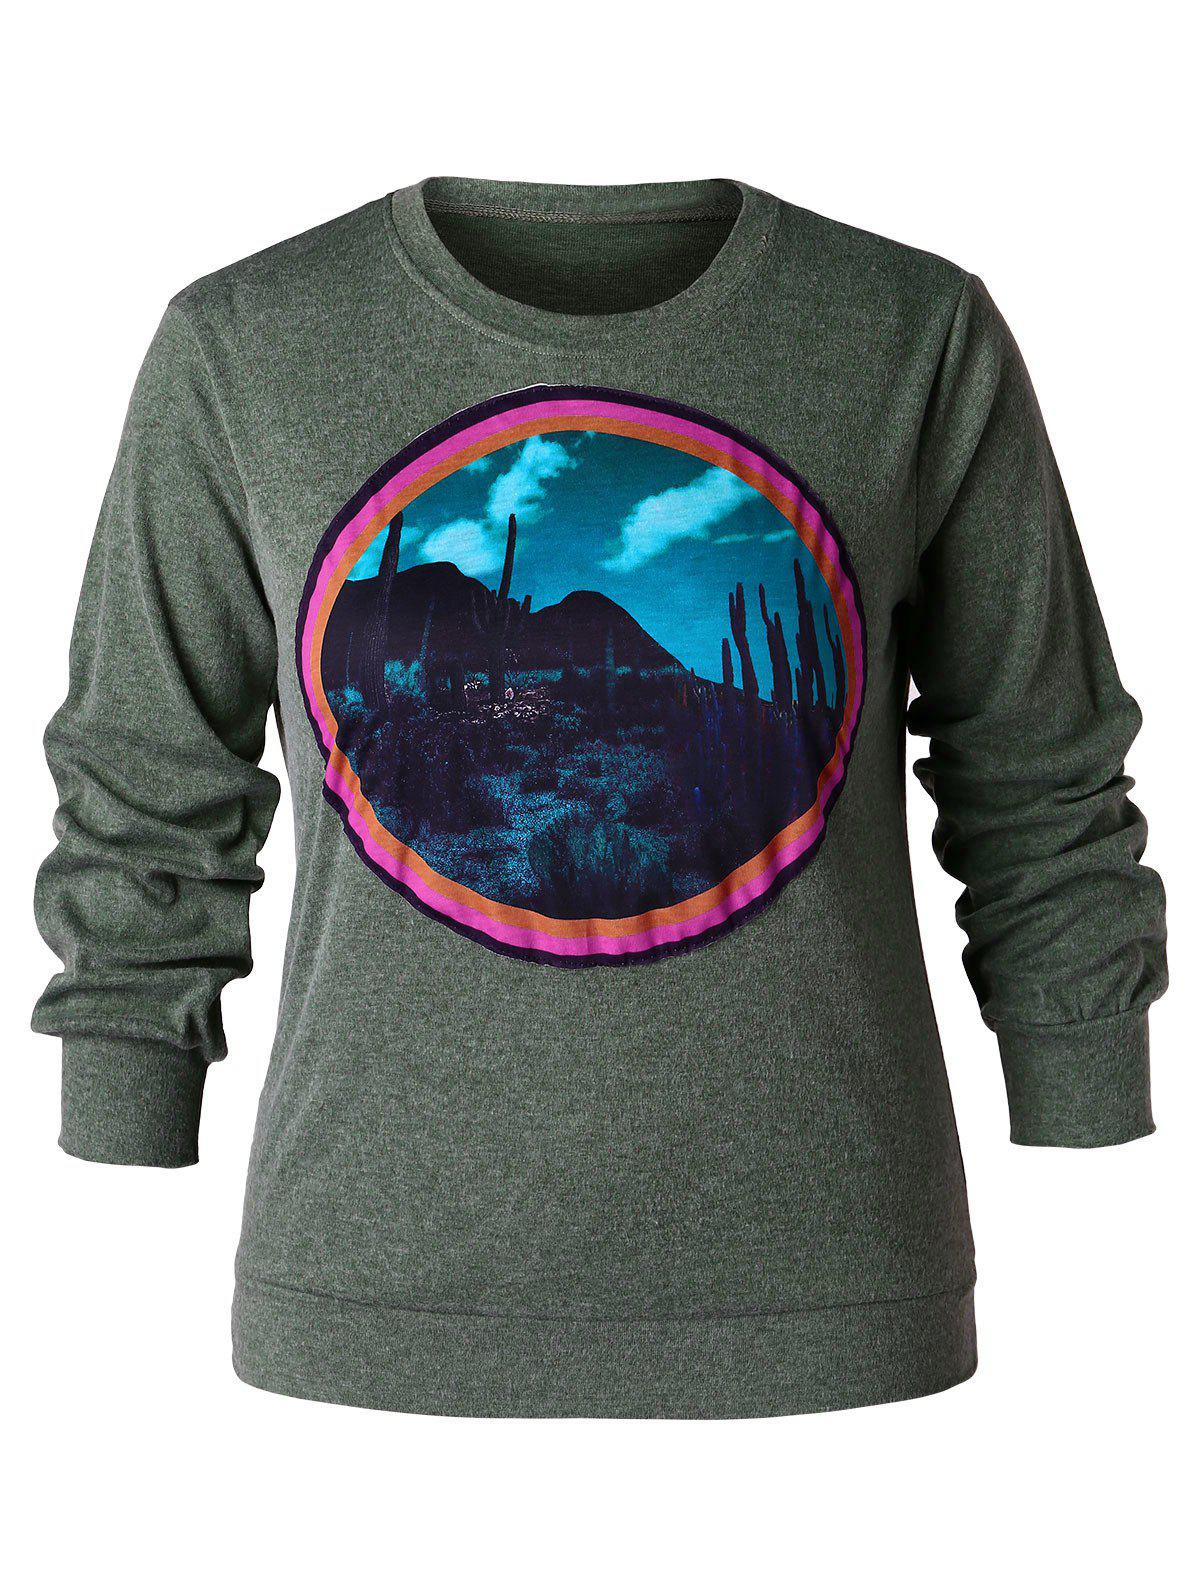 Sweat-shirt Pull over 3D Cactus Imprimé de Grande Taille